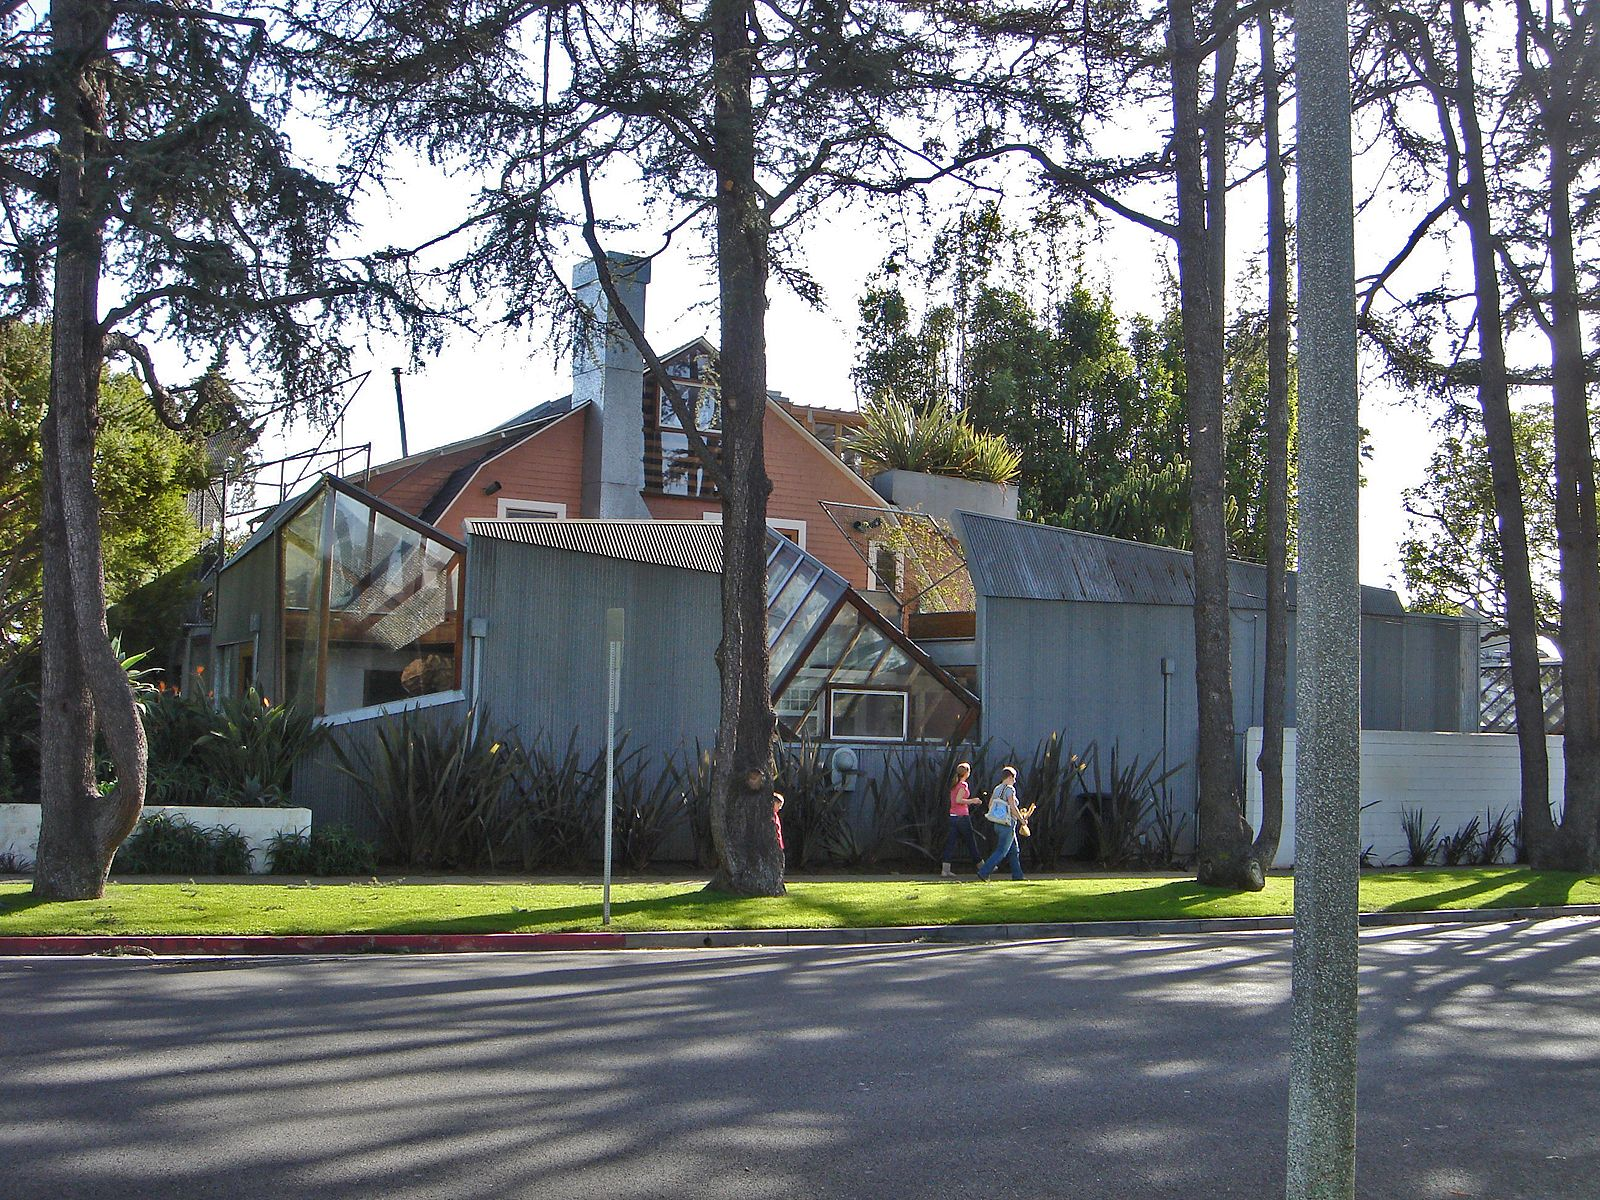 Ad classic norton house frank gehry archdaily - 7 Buildings That Defined Frank Gehry S Legacy Gehry Residence Santa Monica California 1978